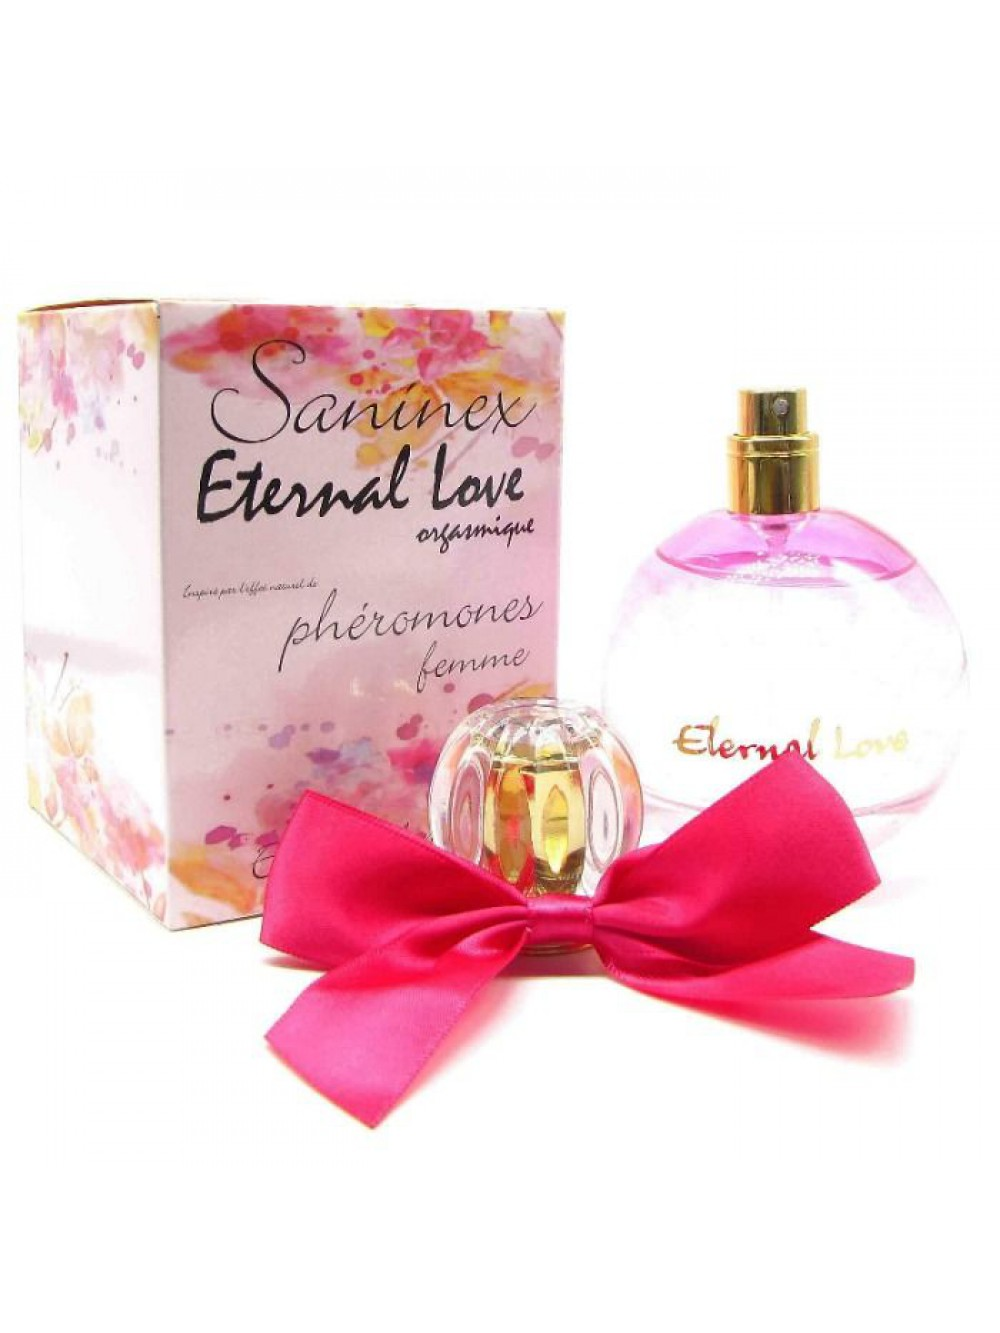 SANINEX WOMAN SCENT ETERNAL LOVE ORGASMIQUE 8984686901900